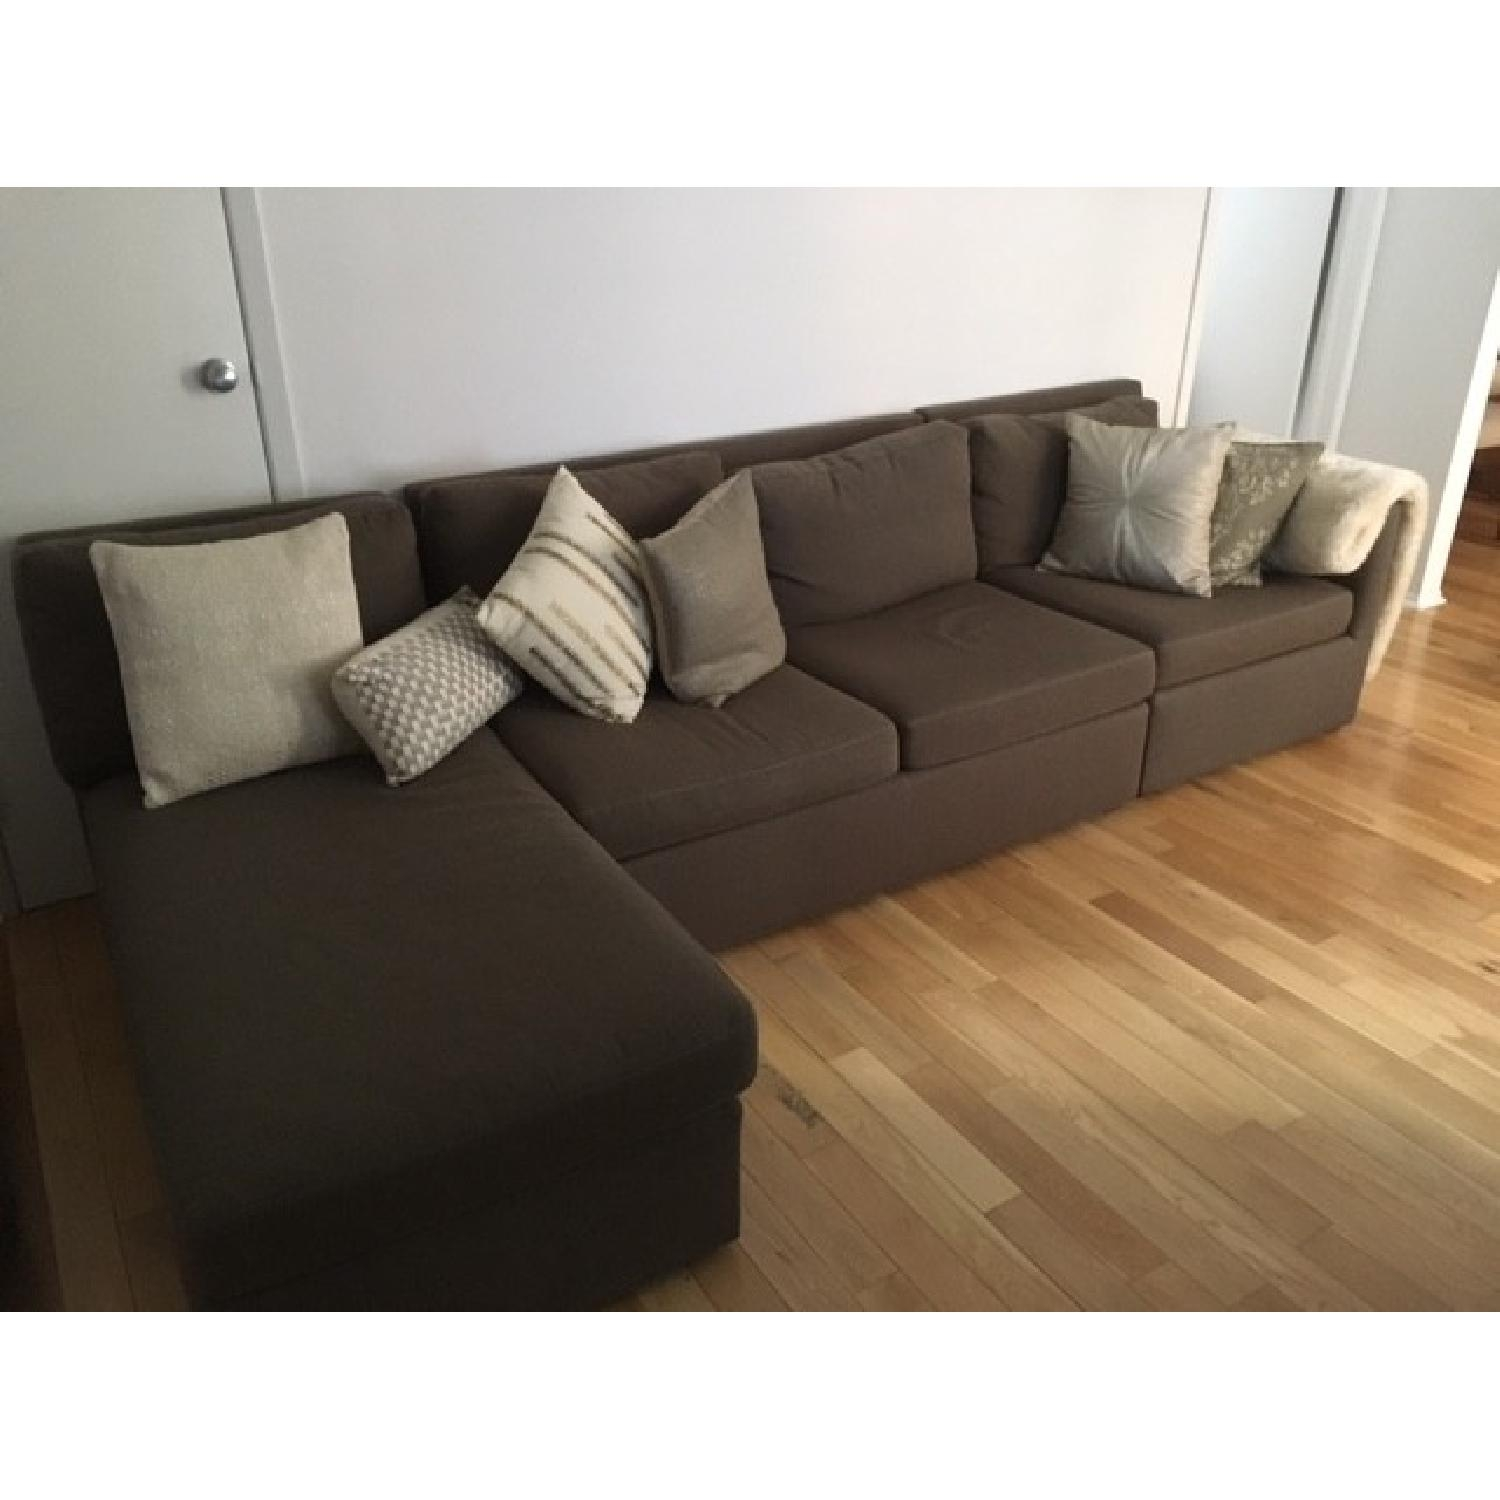 crate and barrel lounge sofa pilling small leather sofas for rooms uk 15 collection of sectional ideas